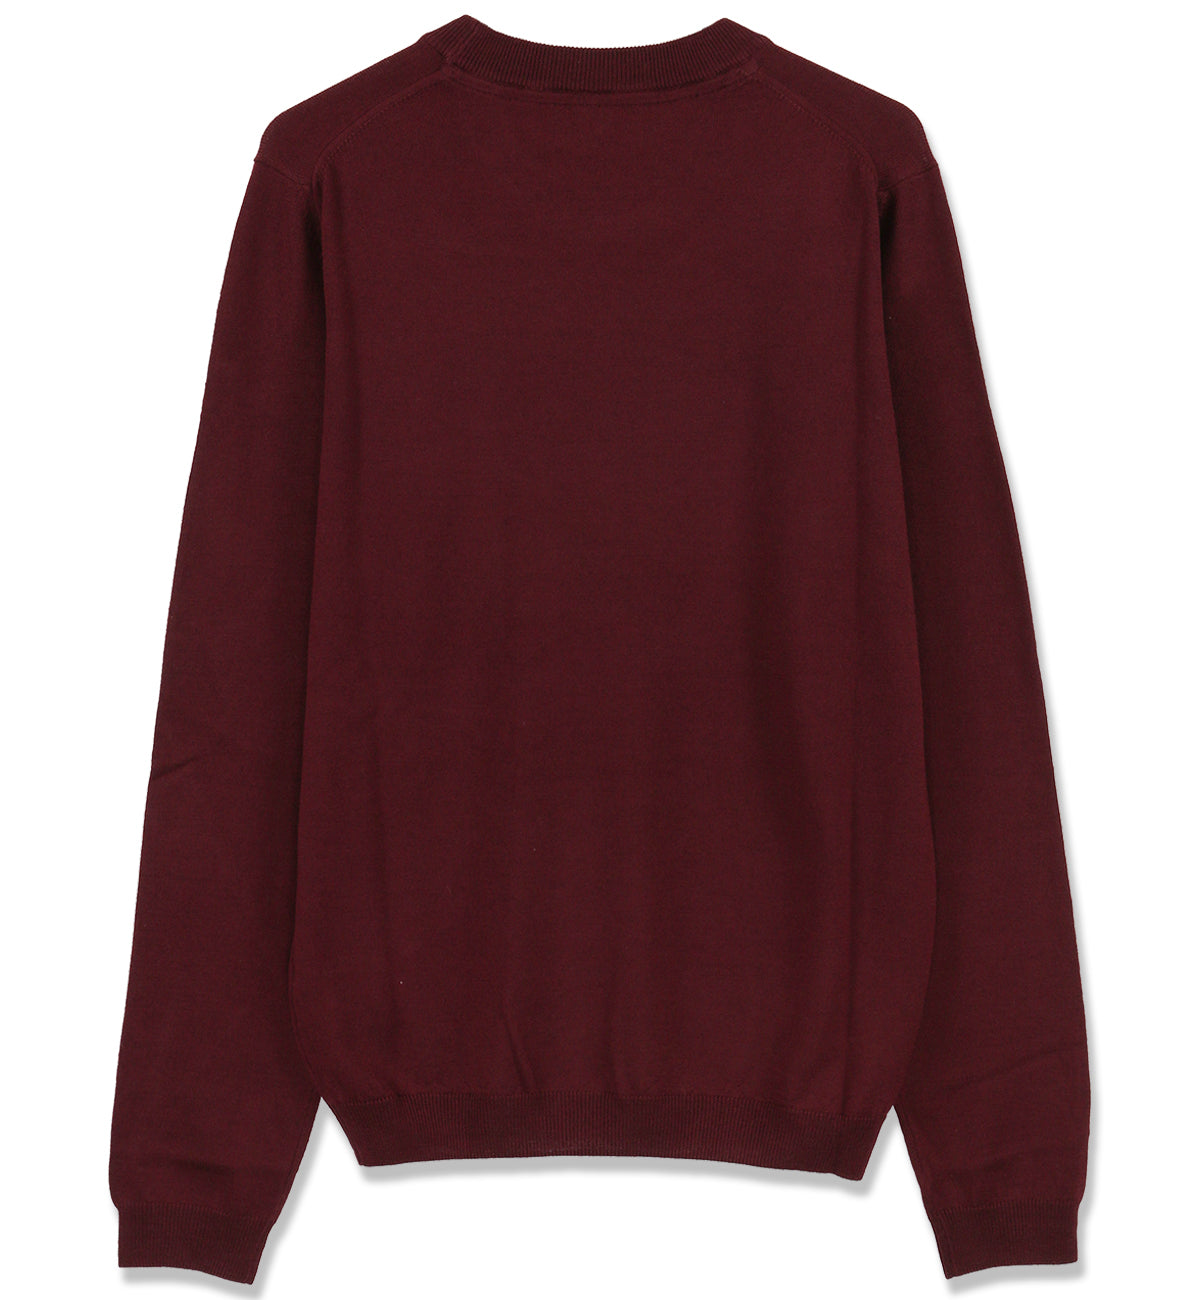 Wood Wood Leon Sweater